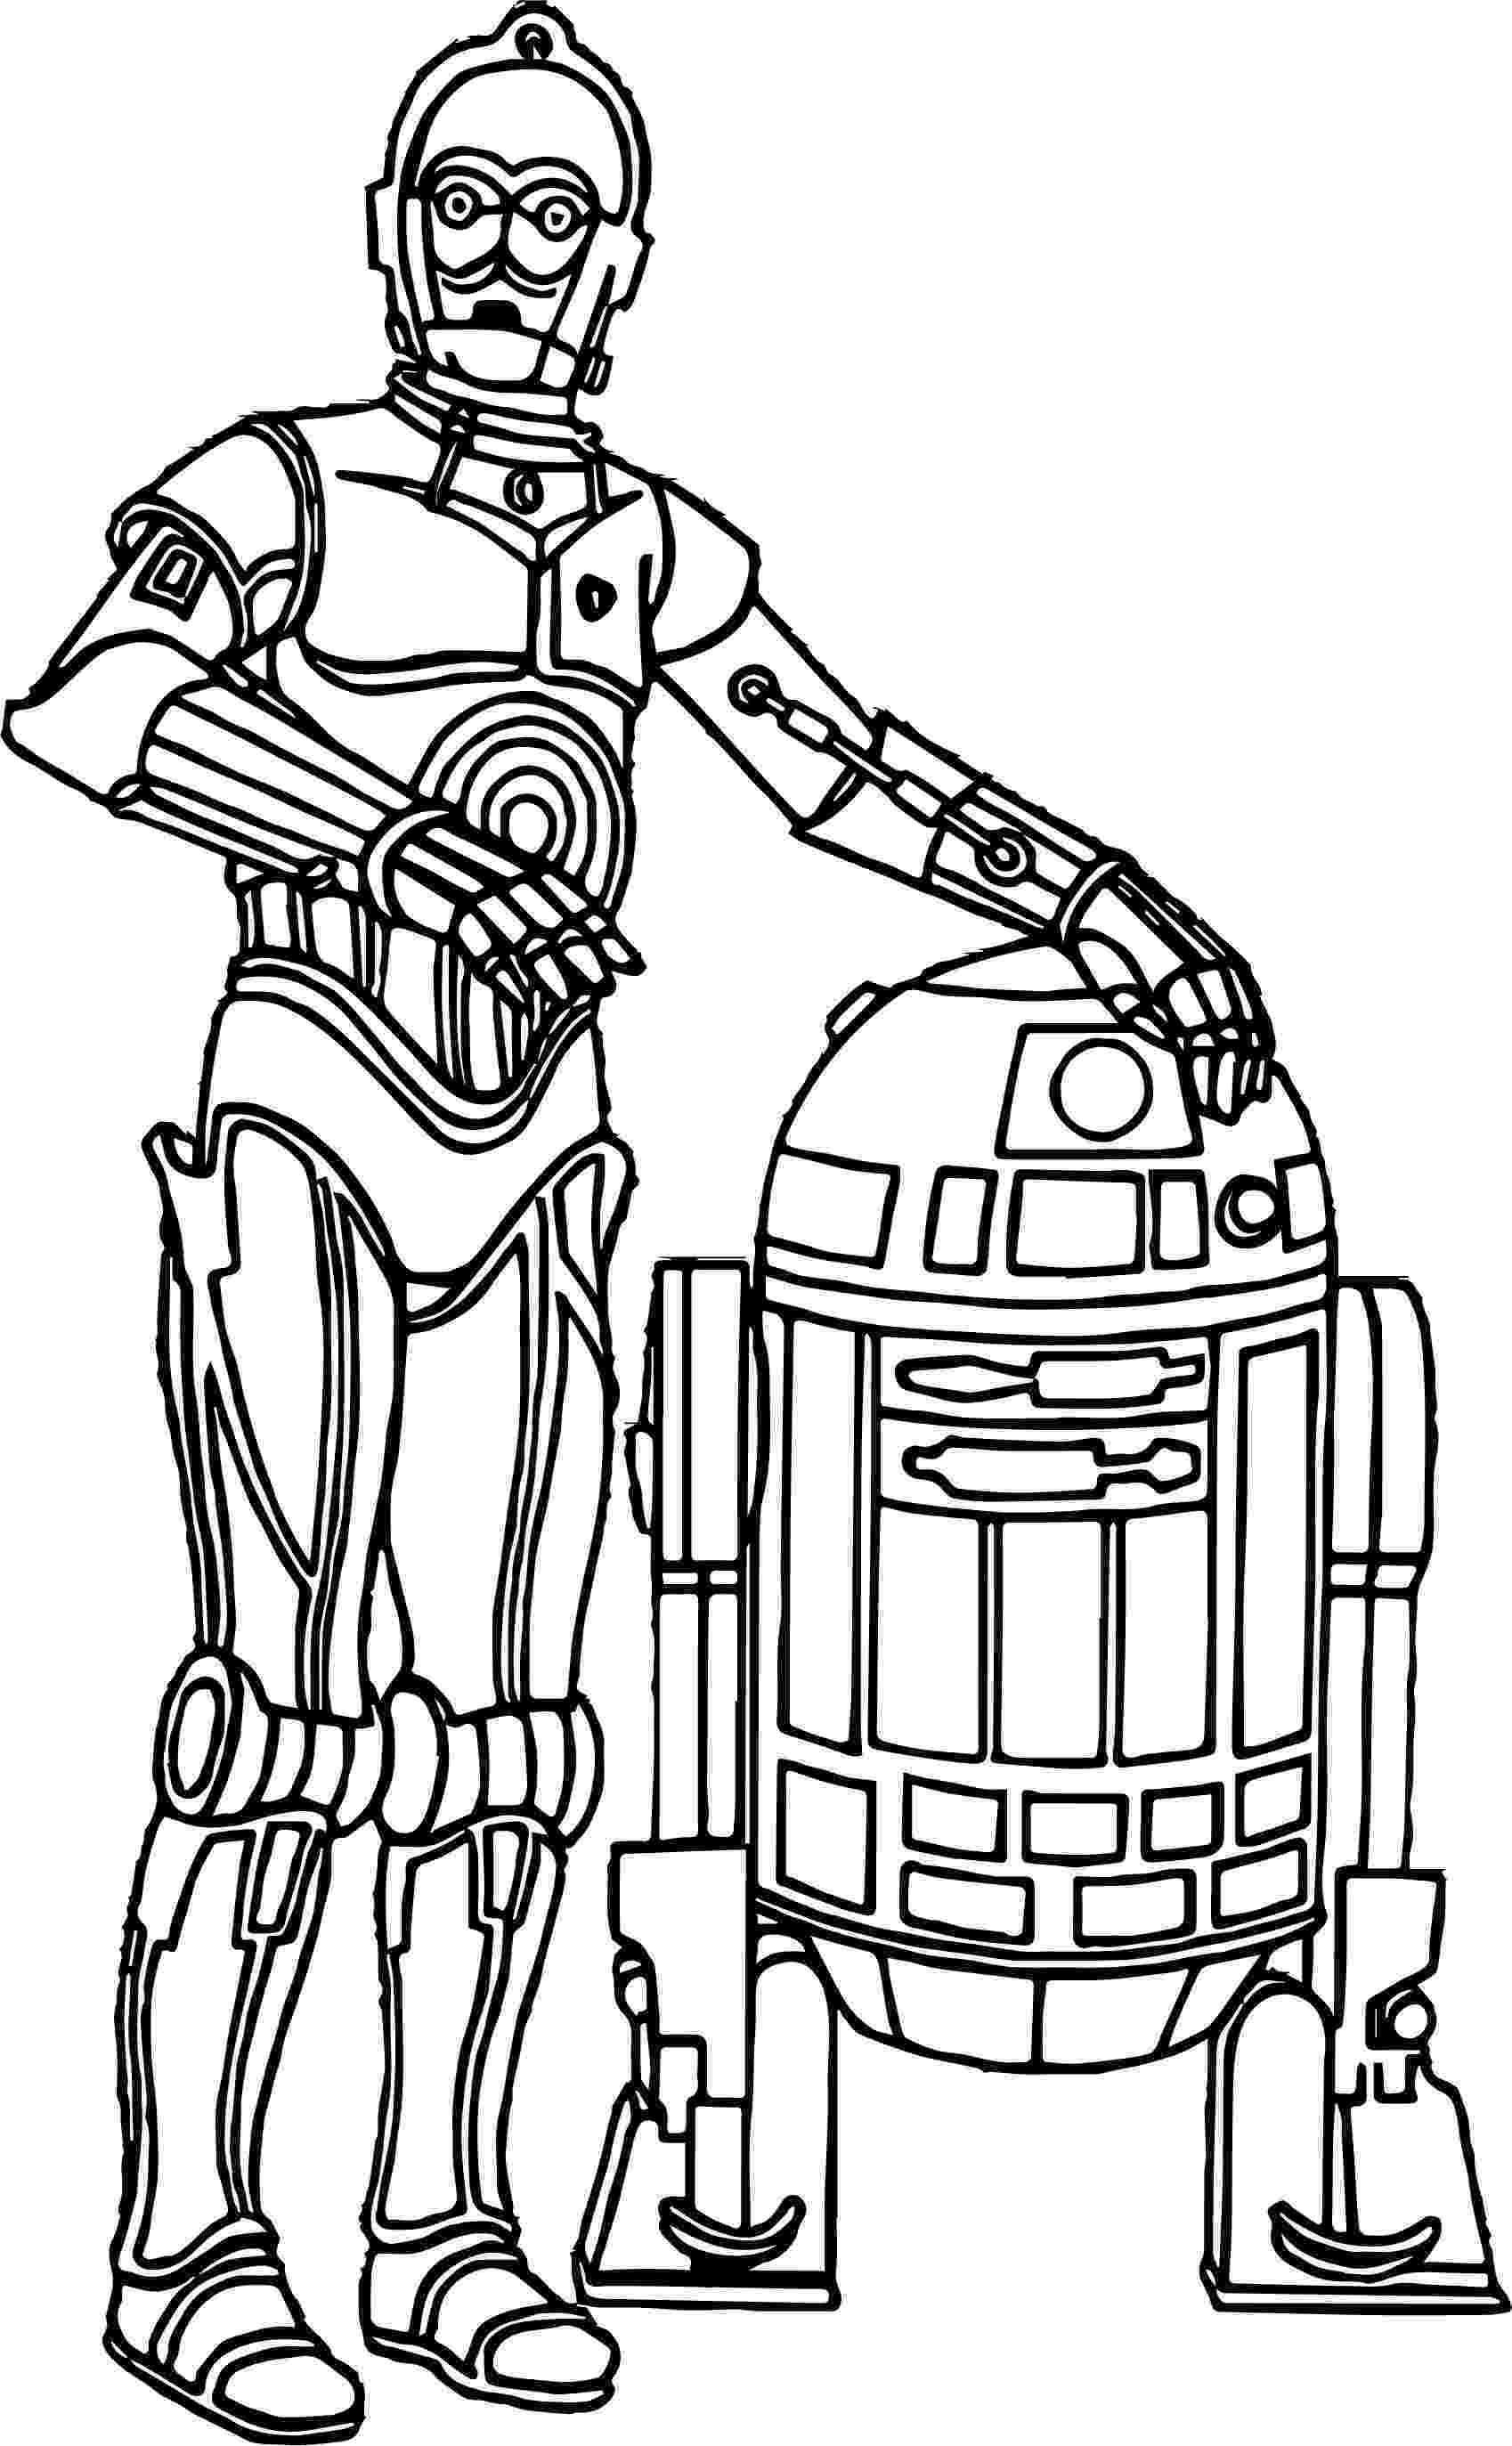 star wars characters coloring pages to print coloriage star wars c6po c3po 2 click on the characters wars coloring star pages